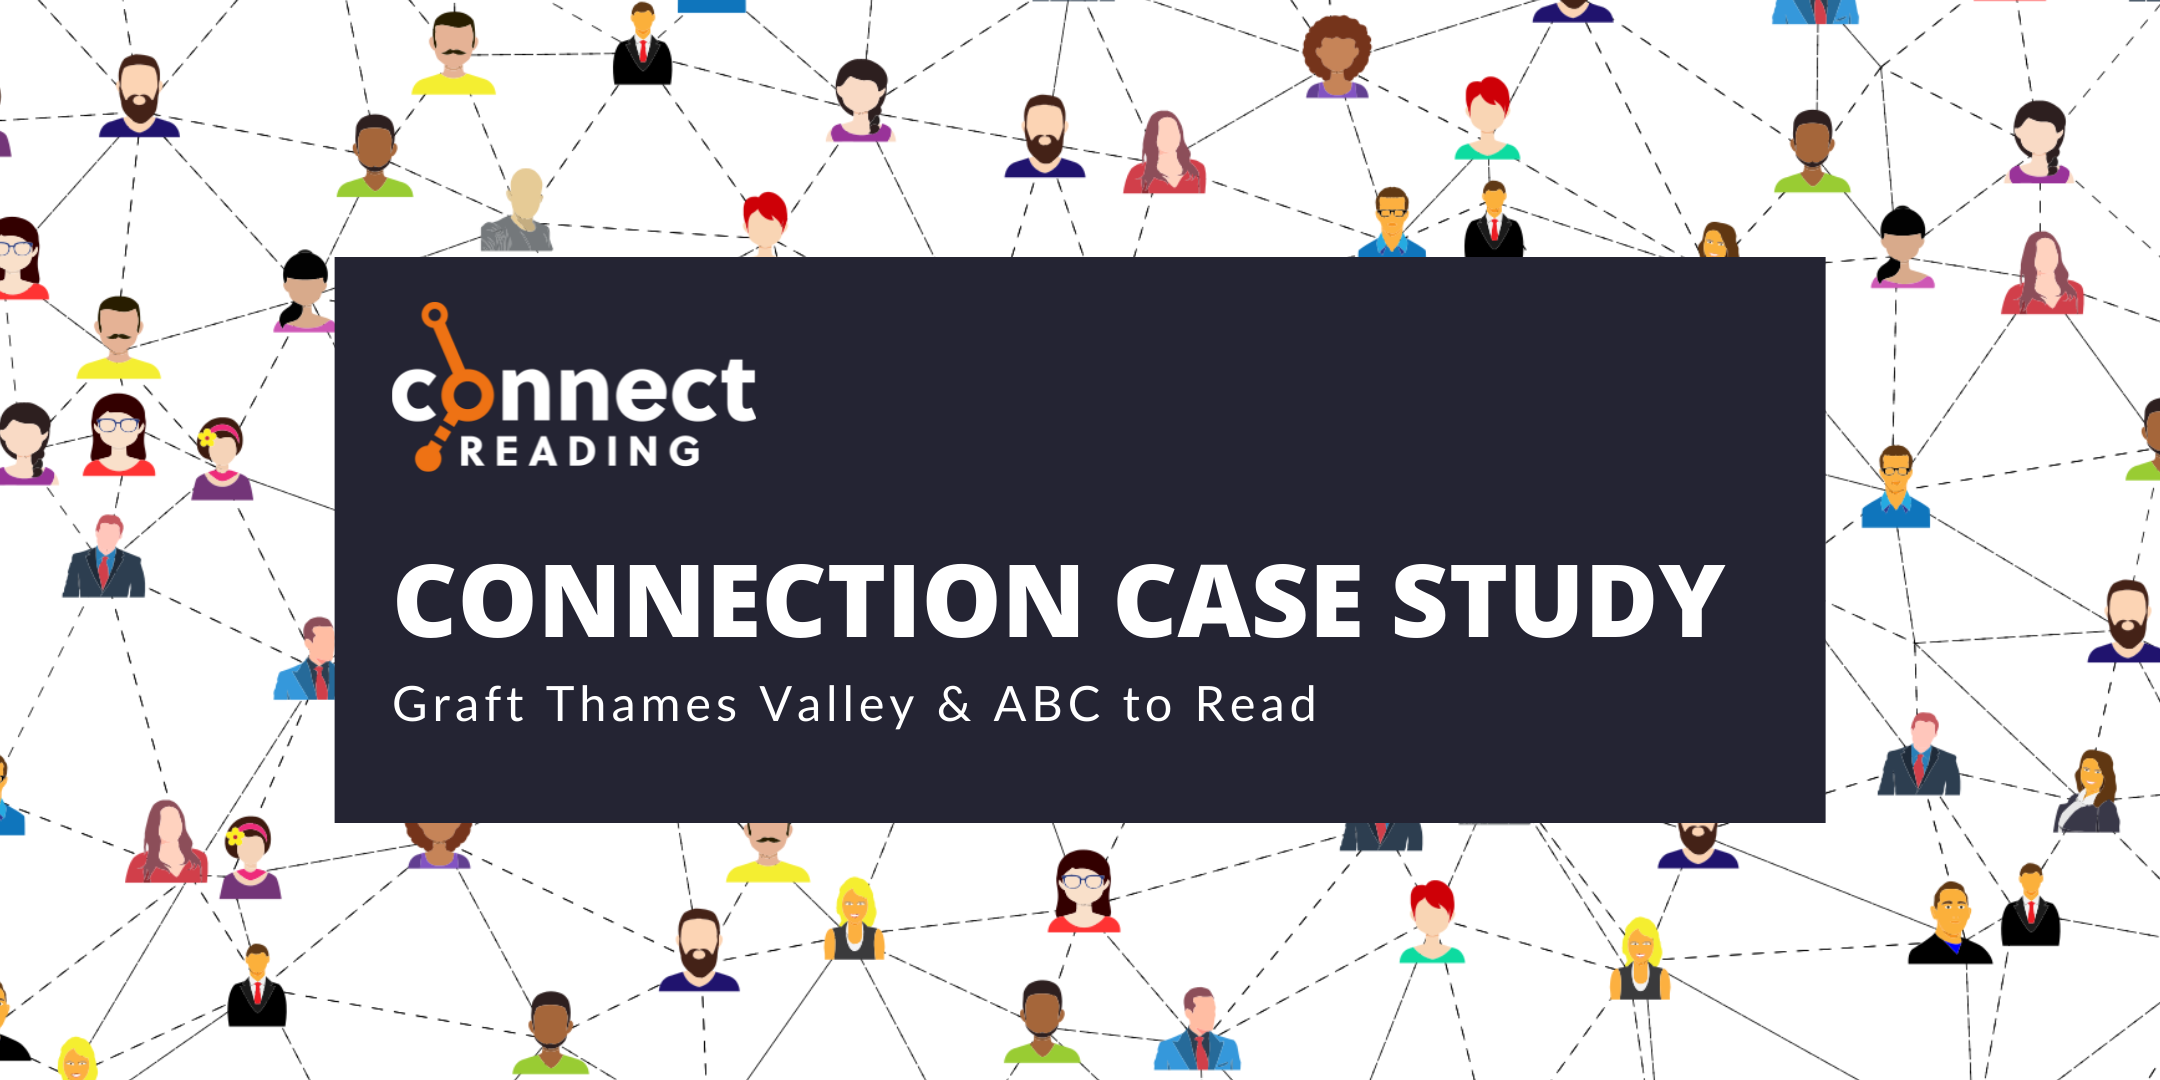 Case Study: Graft Thames Valley & ABC to Read